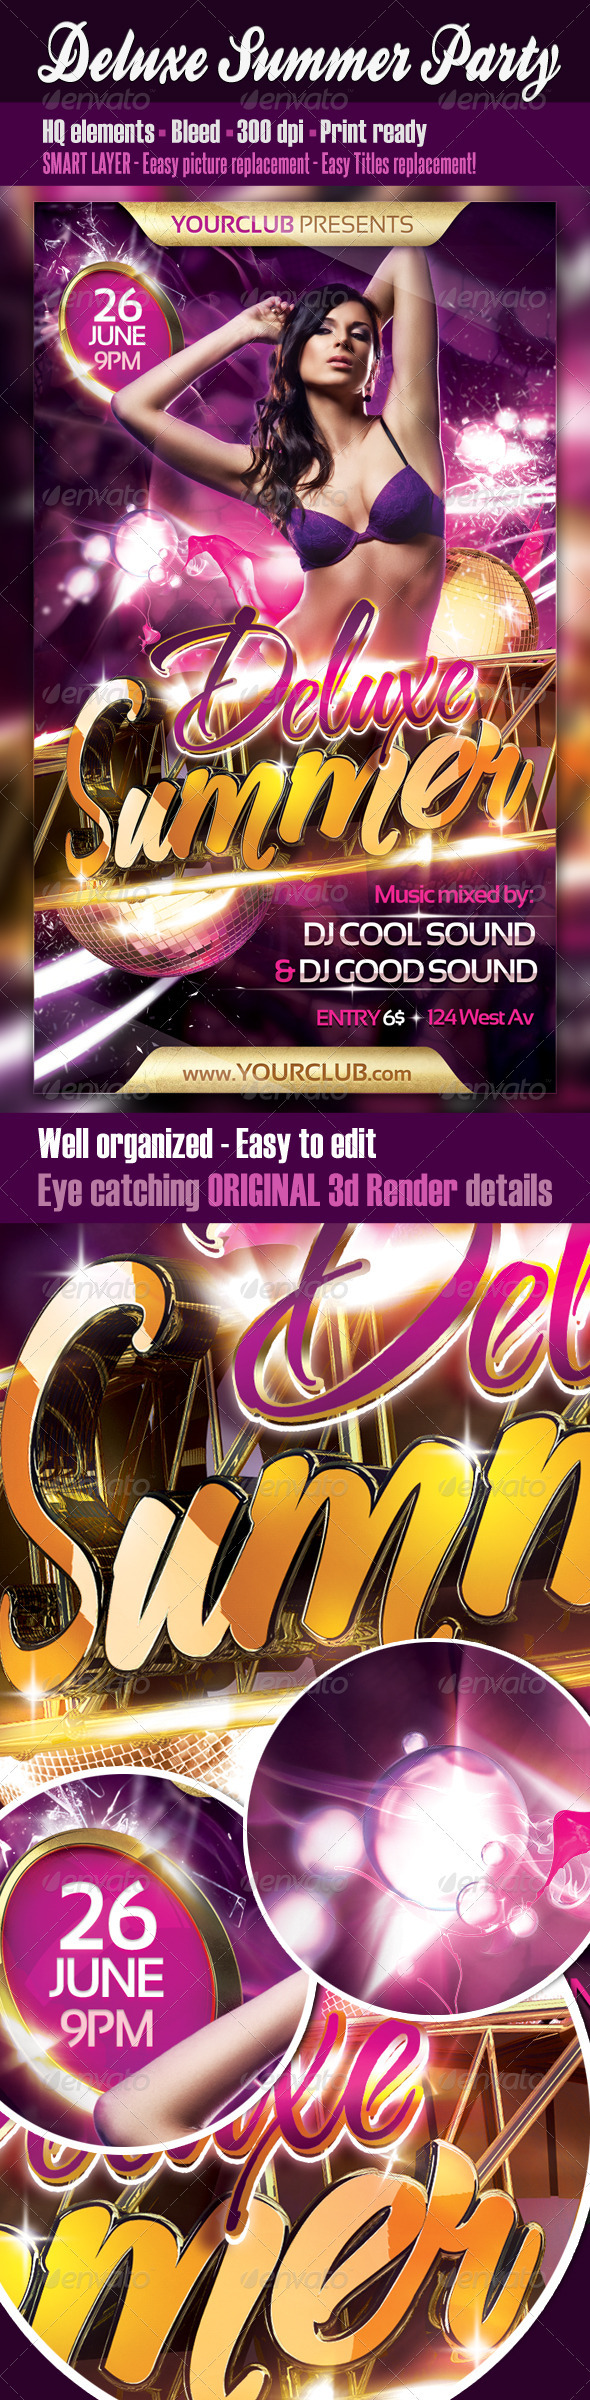 Deluxe Summer Party Flyer - Clubs & Parties Events